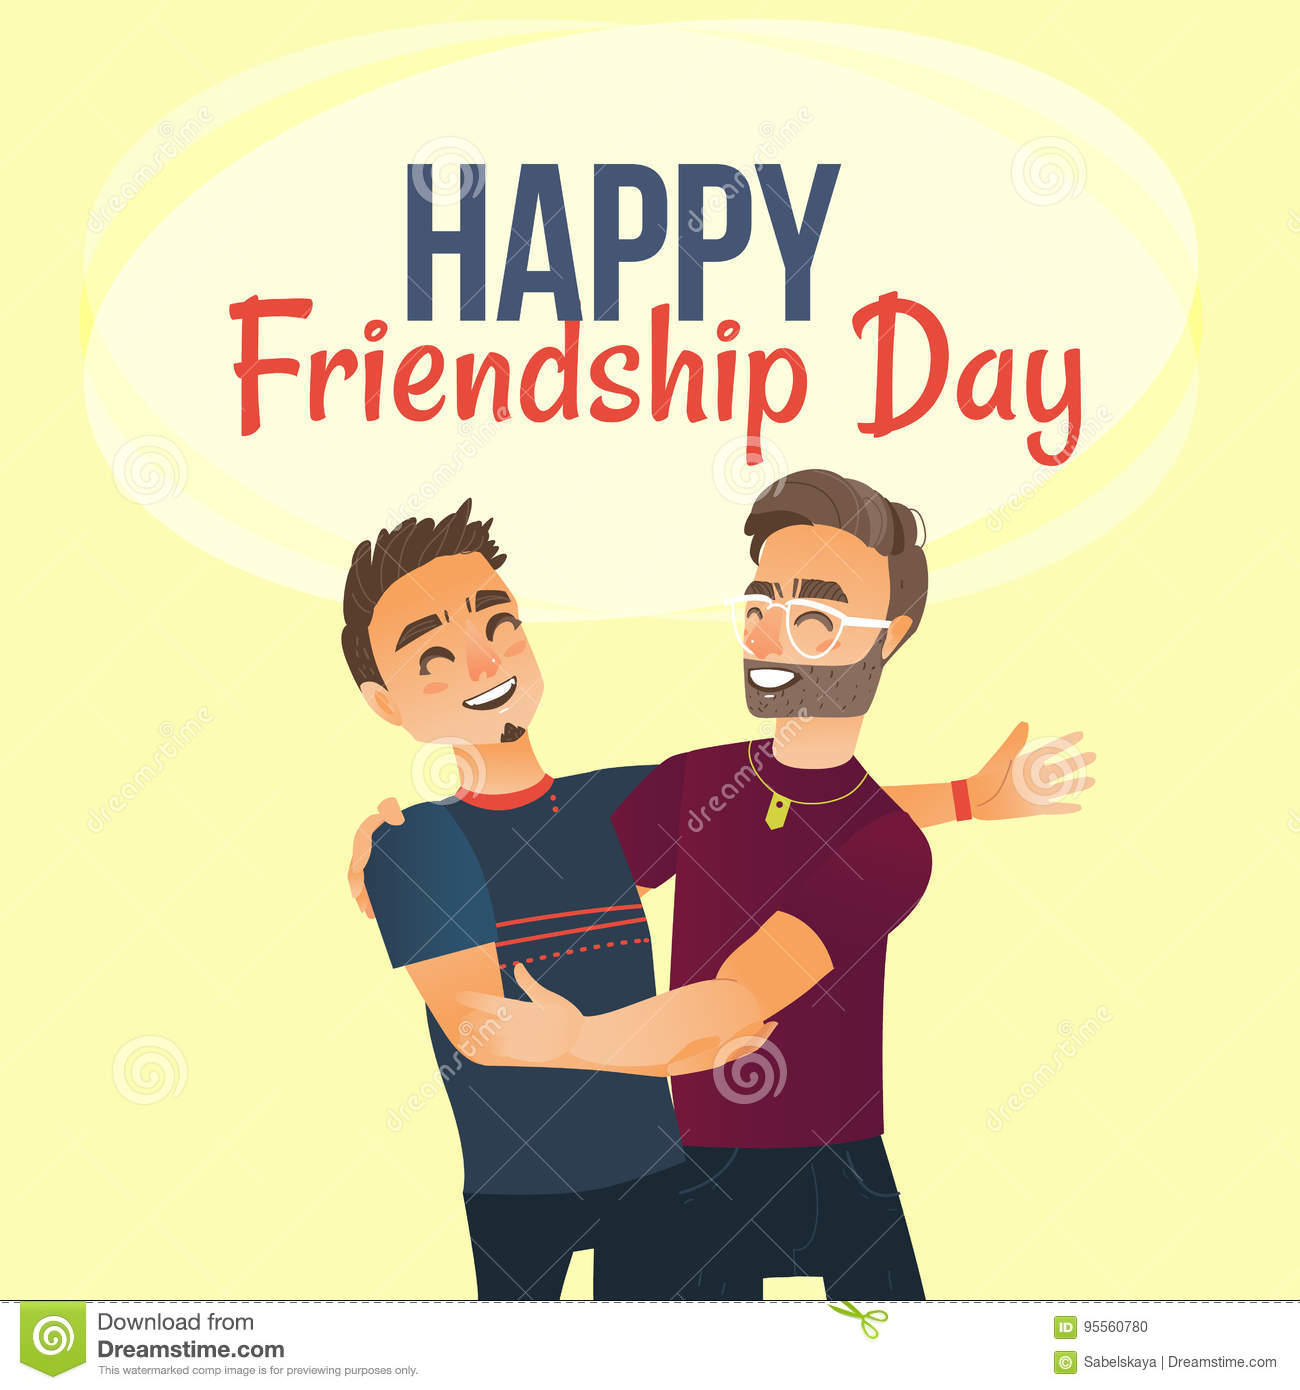 Happy Friendship Day Greeting Card With Two Men Friends Hugging Stock Vector Illustration Of Casual Postcard 95560780